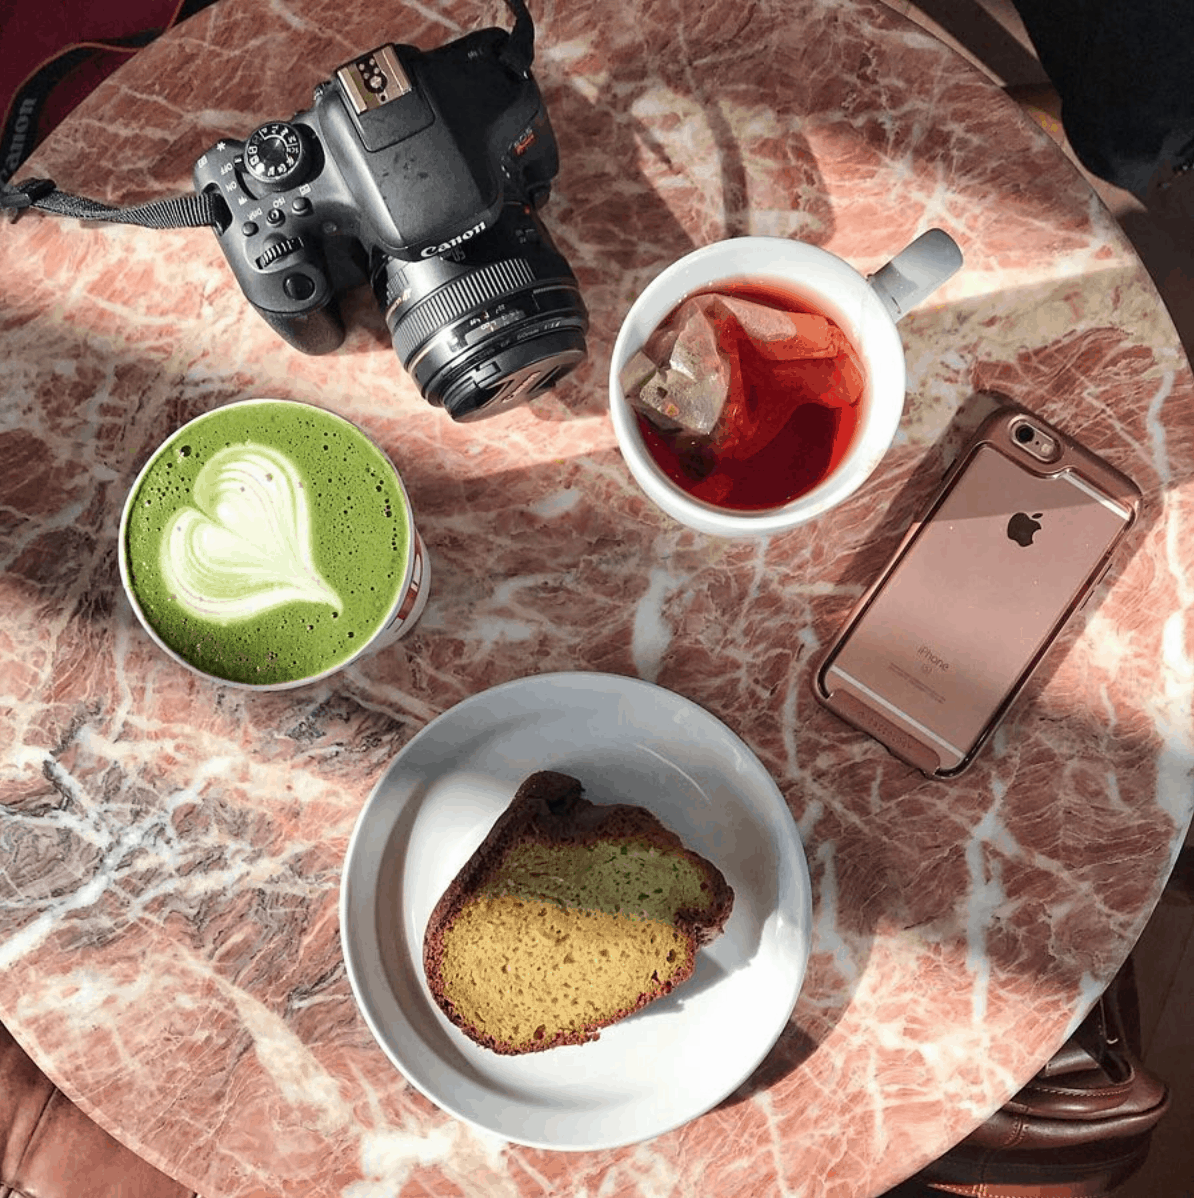 A coffee shop flat lay photo